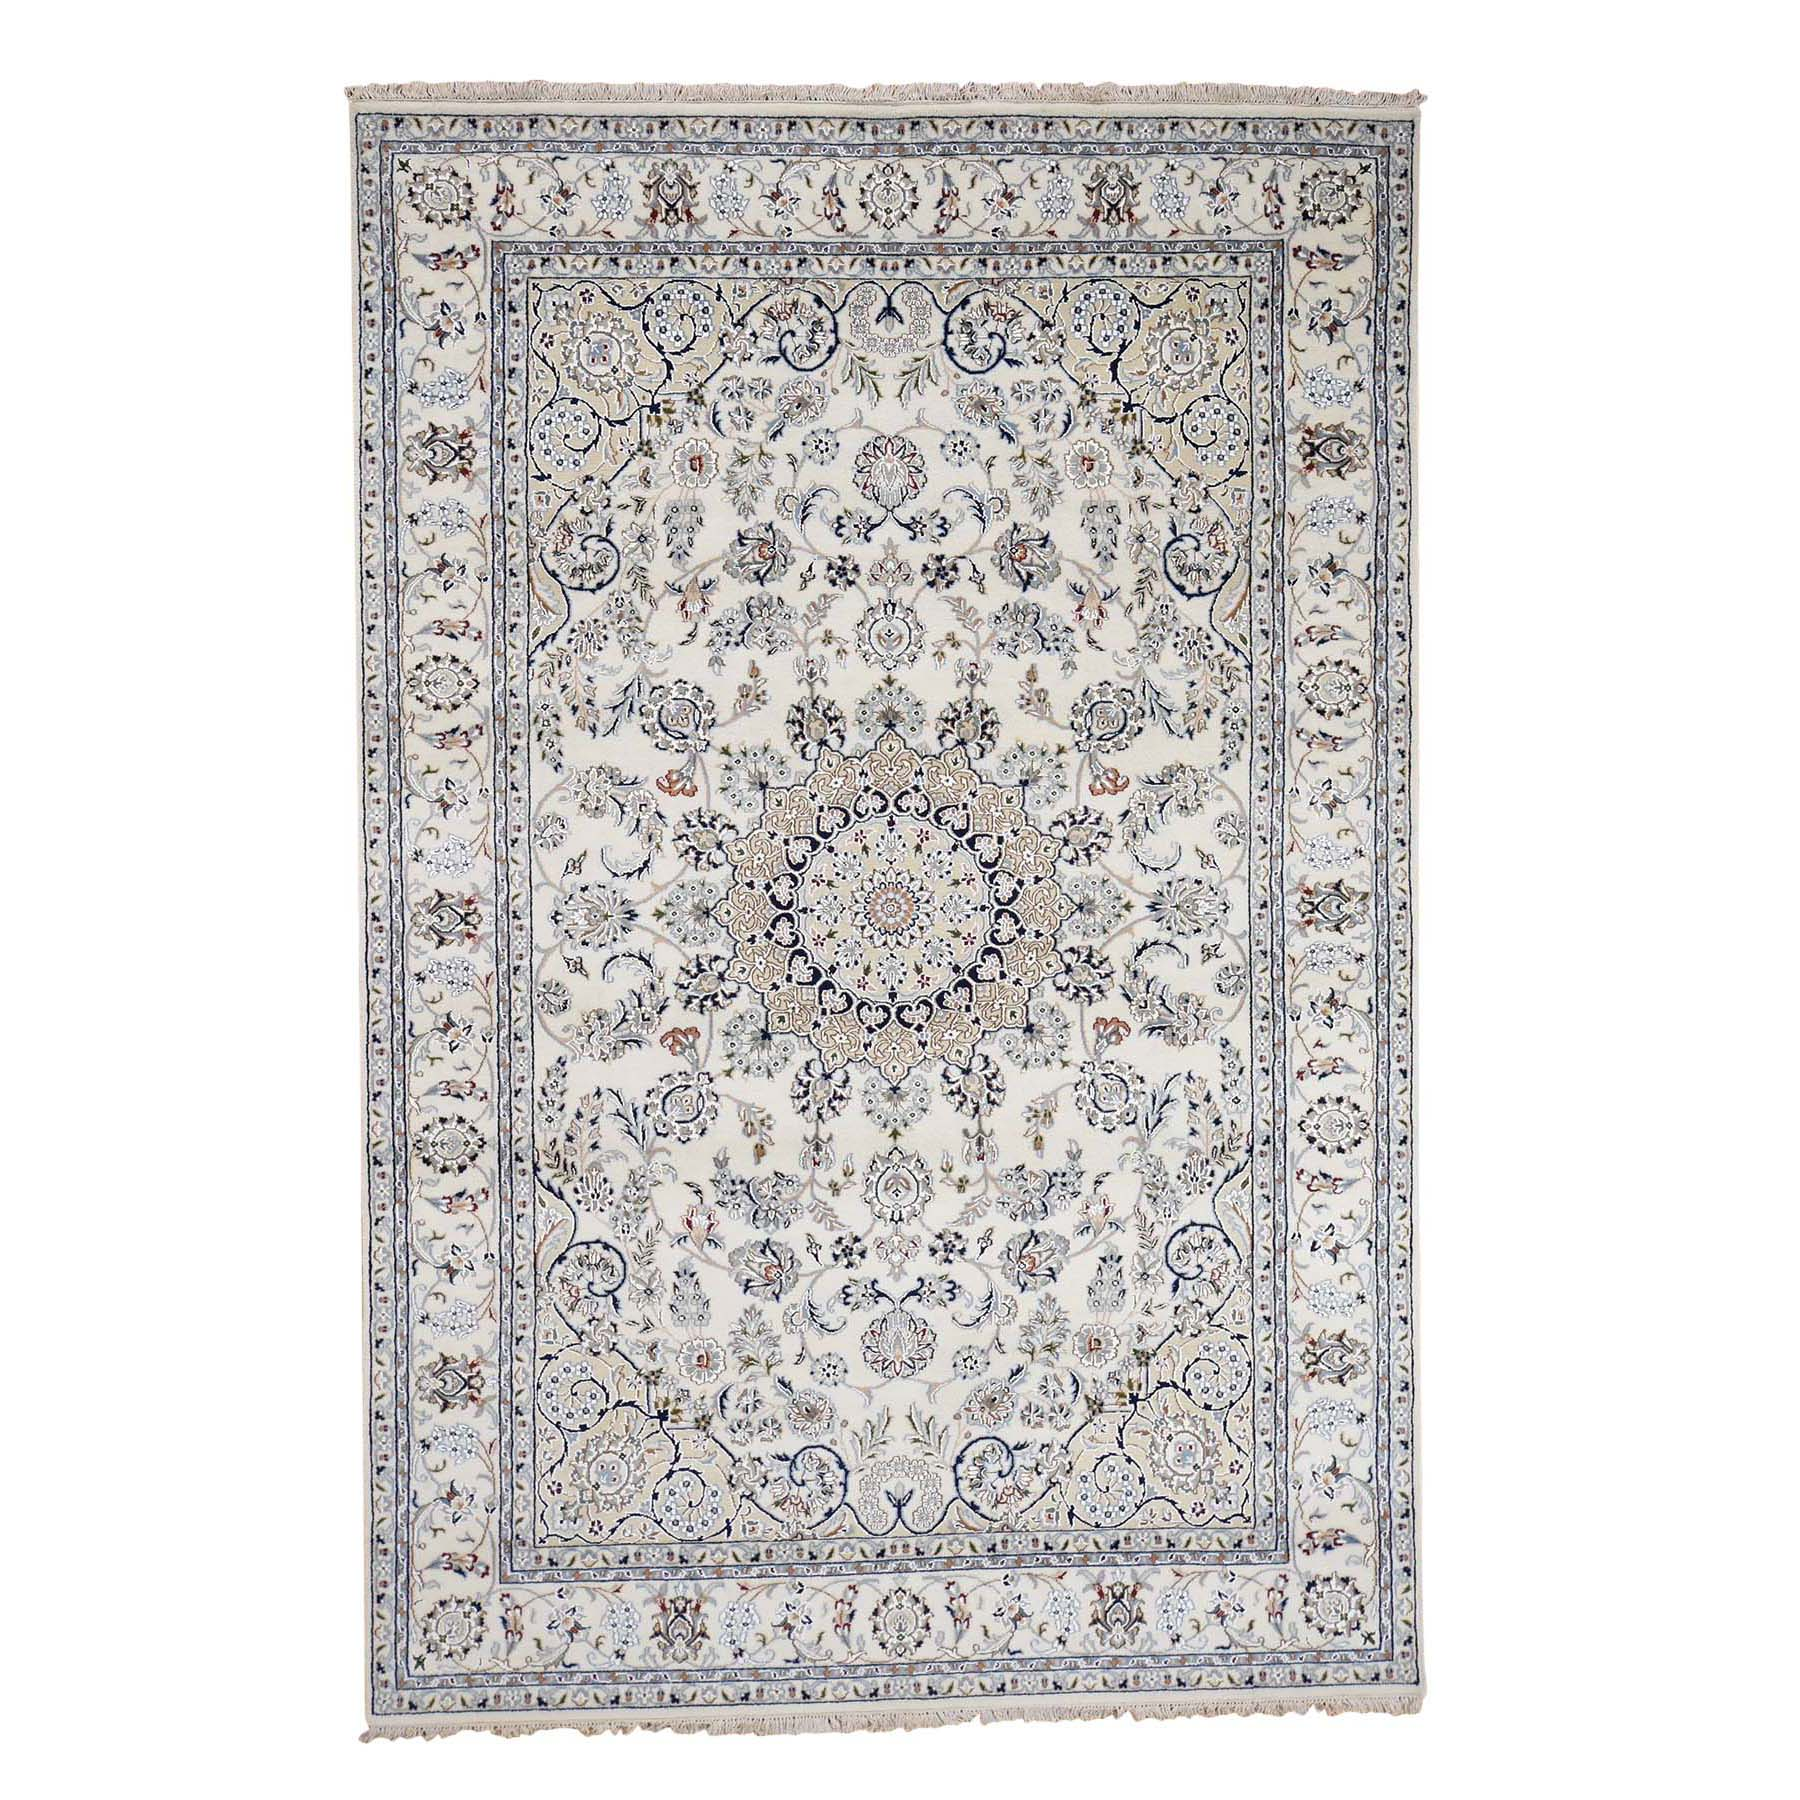 Pirniakan Collection Hand Knotted Ivory Rug No: 0186526